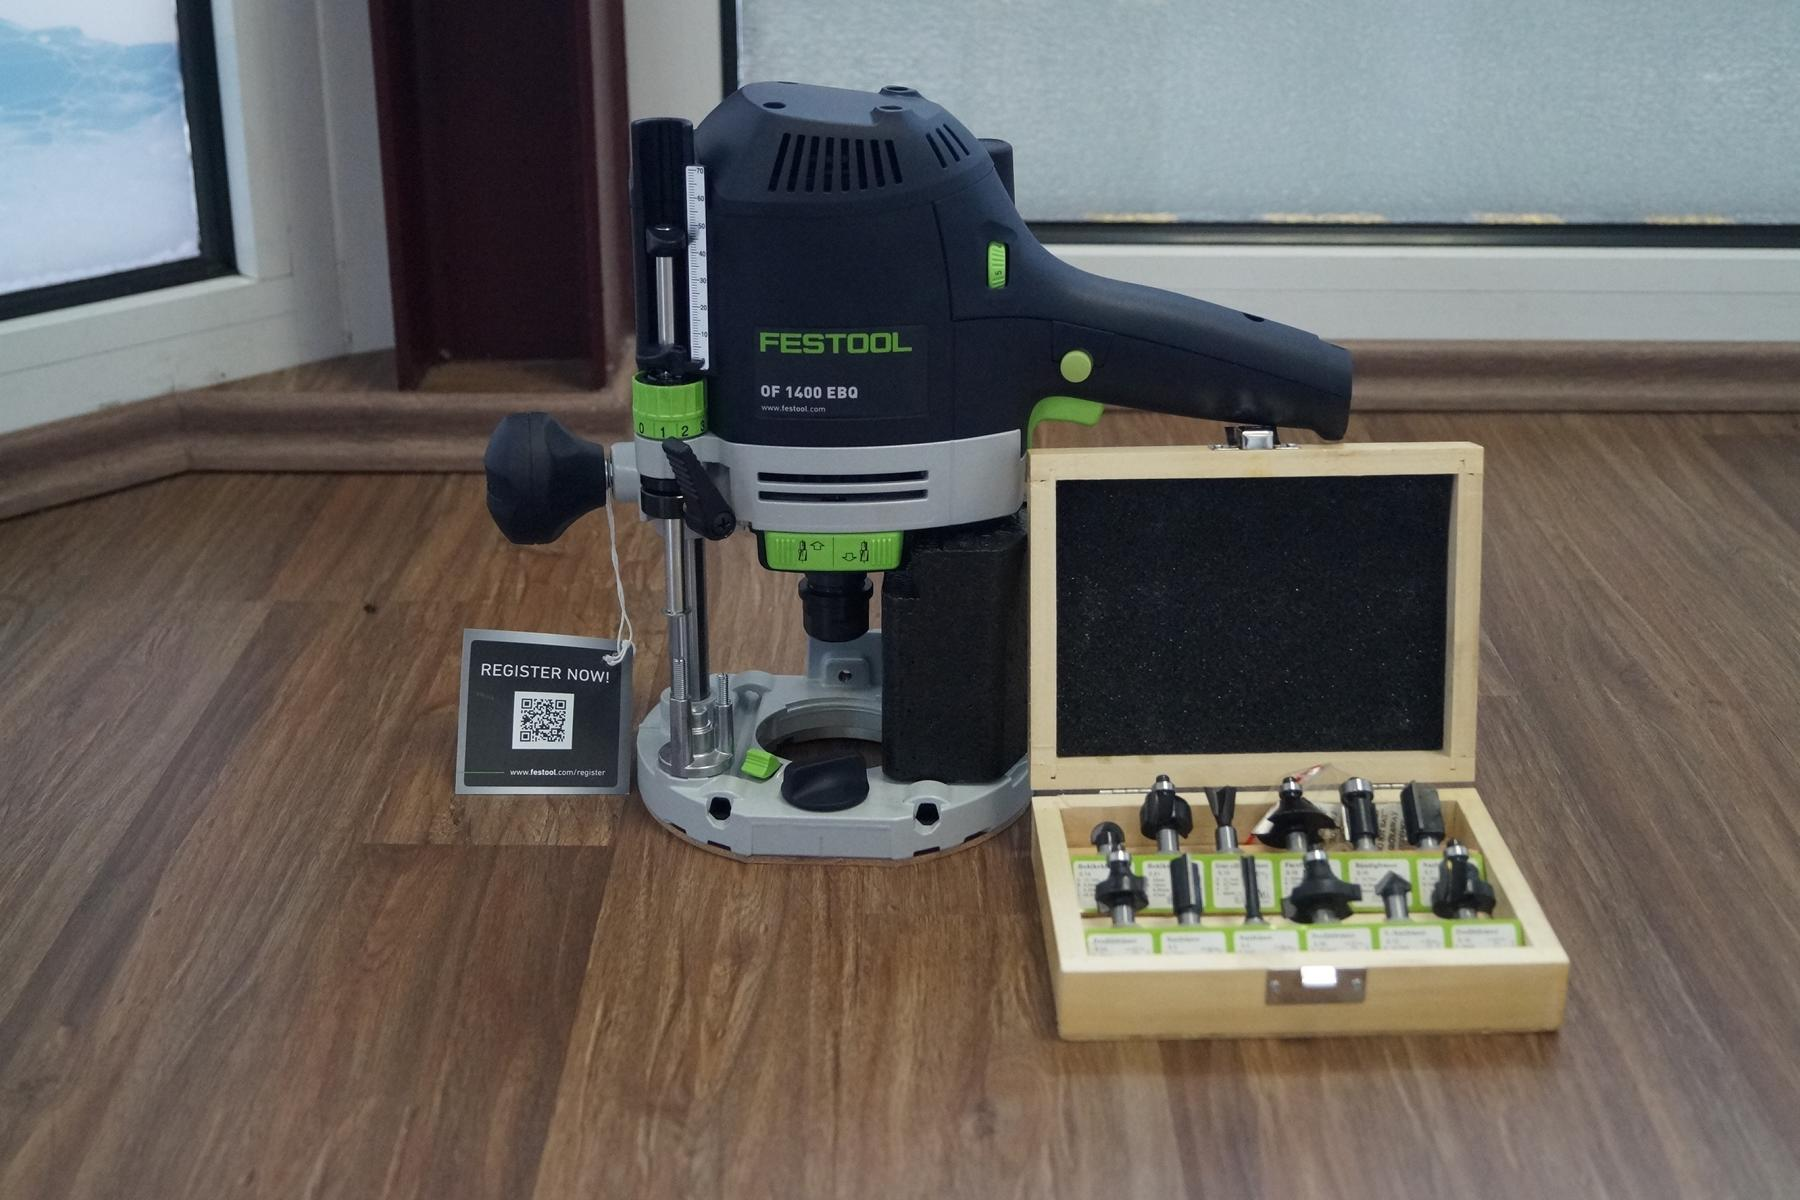 FESTOOL Oberfräse OF 1400 EBQ